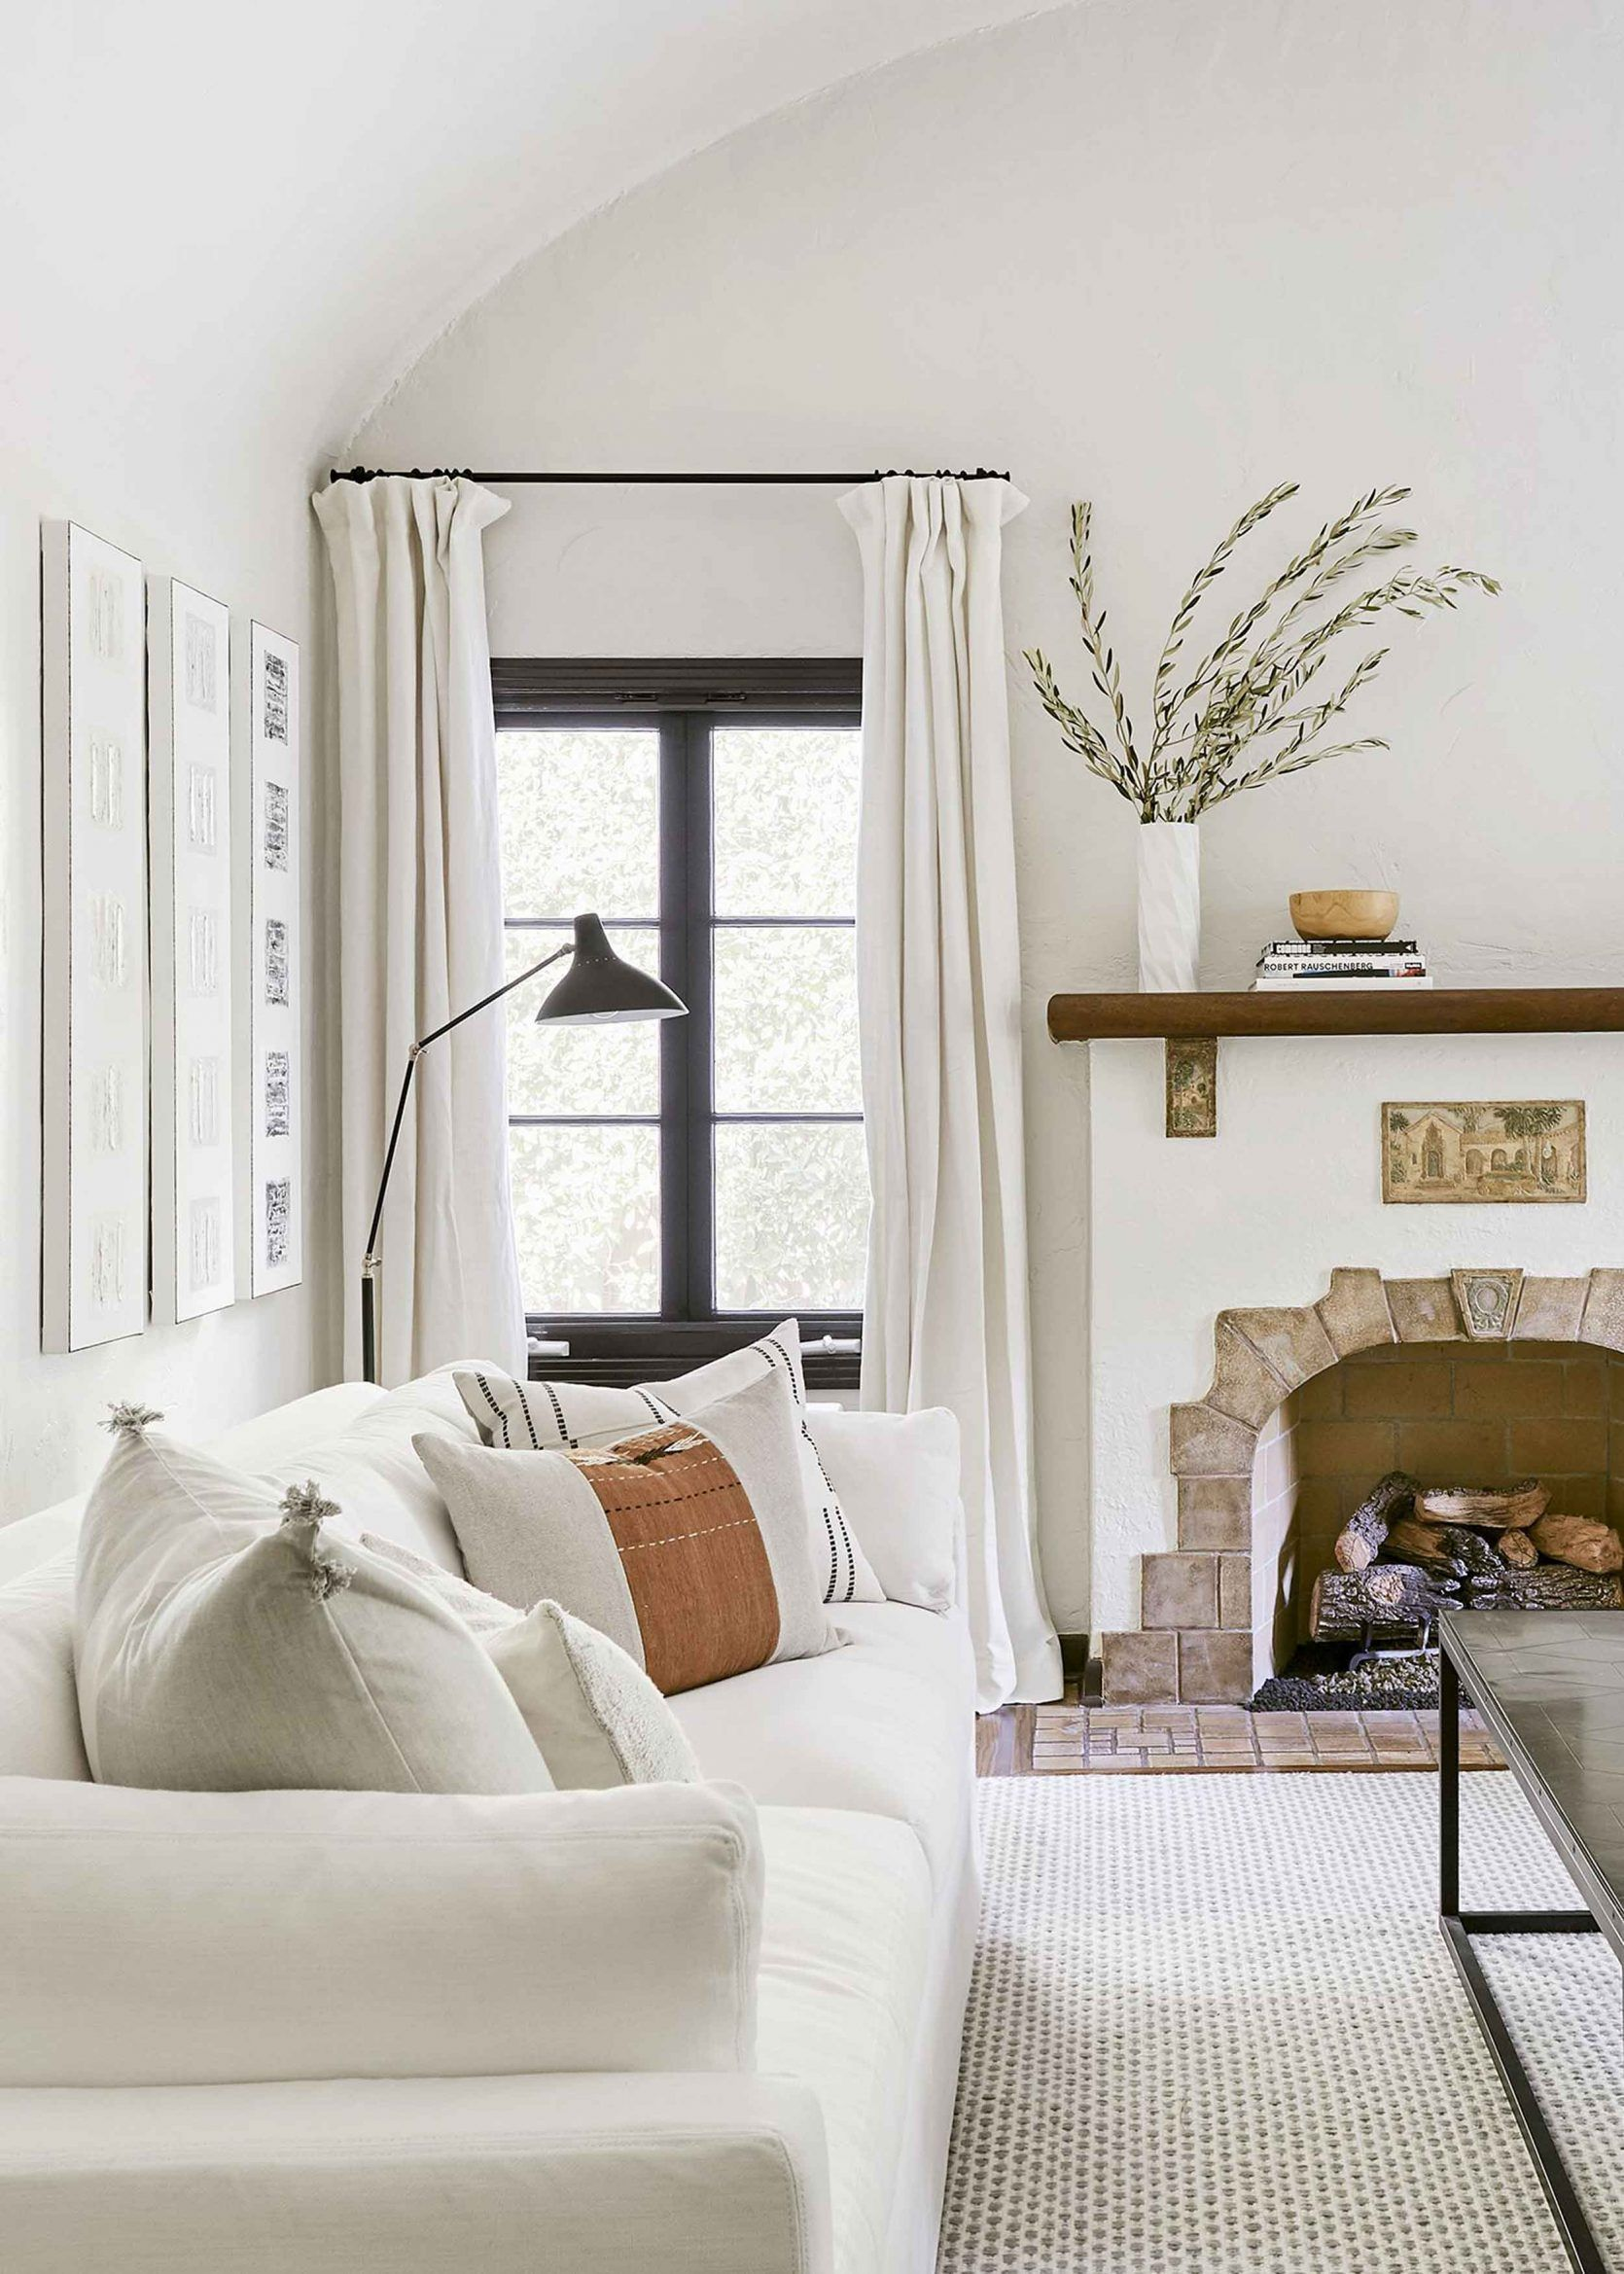 7 Key Things To Remember When Decorating With Neutrals Living